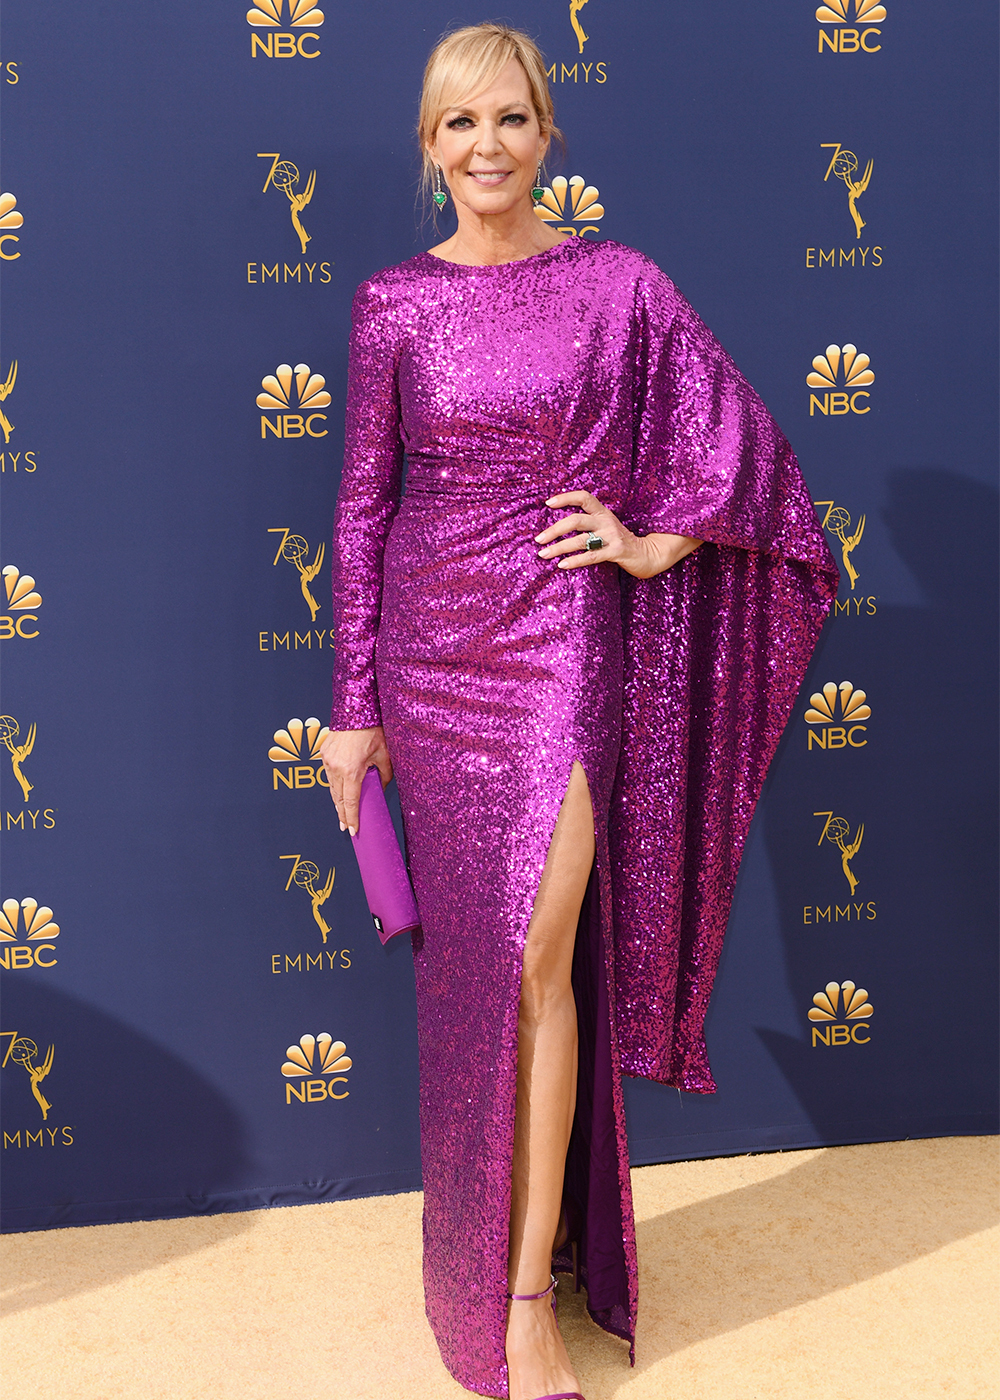 2018 Emmys Best Dressed I Allison Janney in Prabal Gurung #BestDressed #Emmys #PrabalGurung #Fashionista